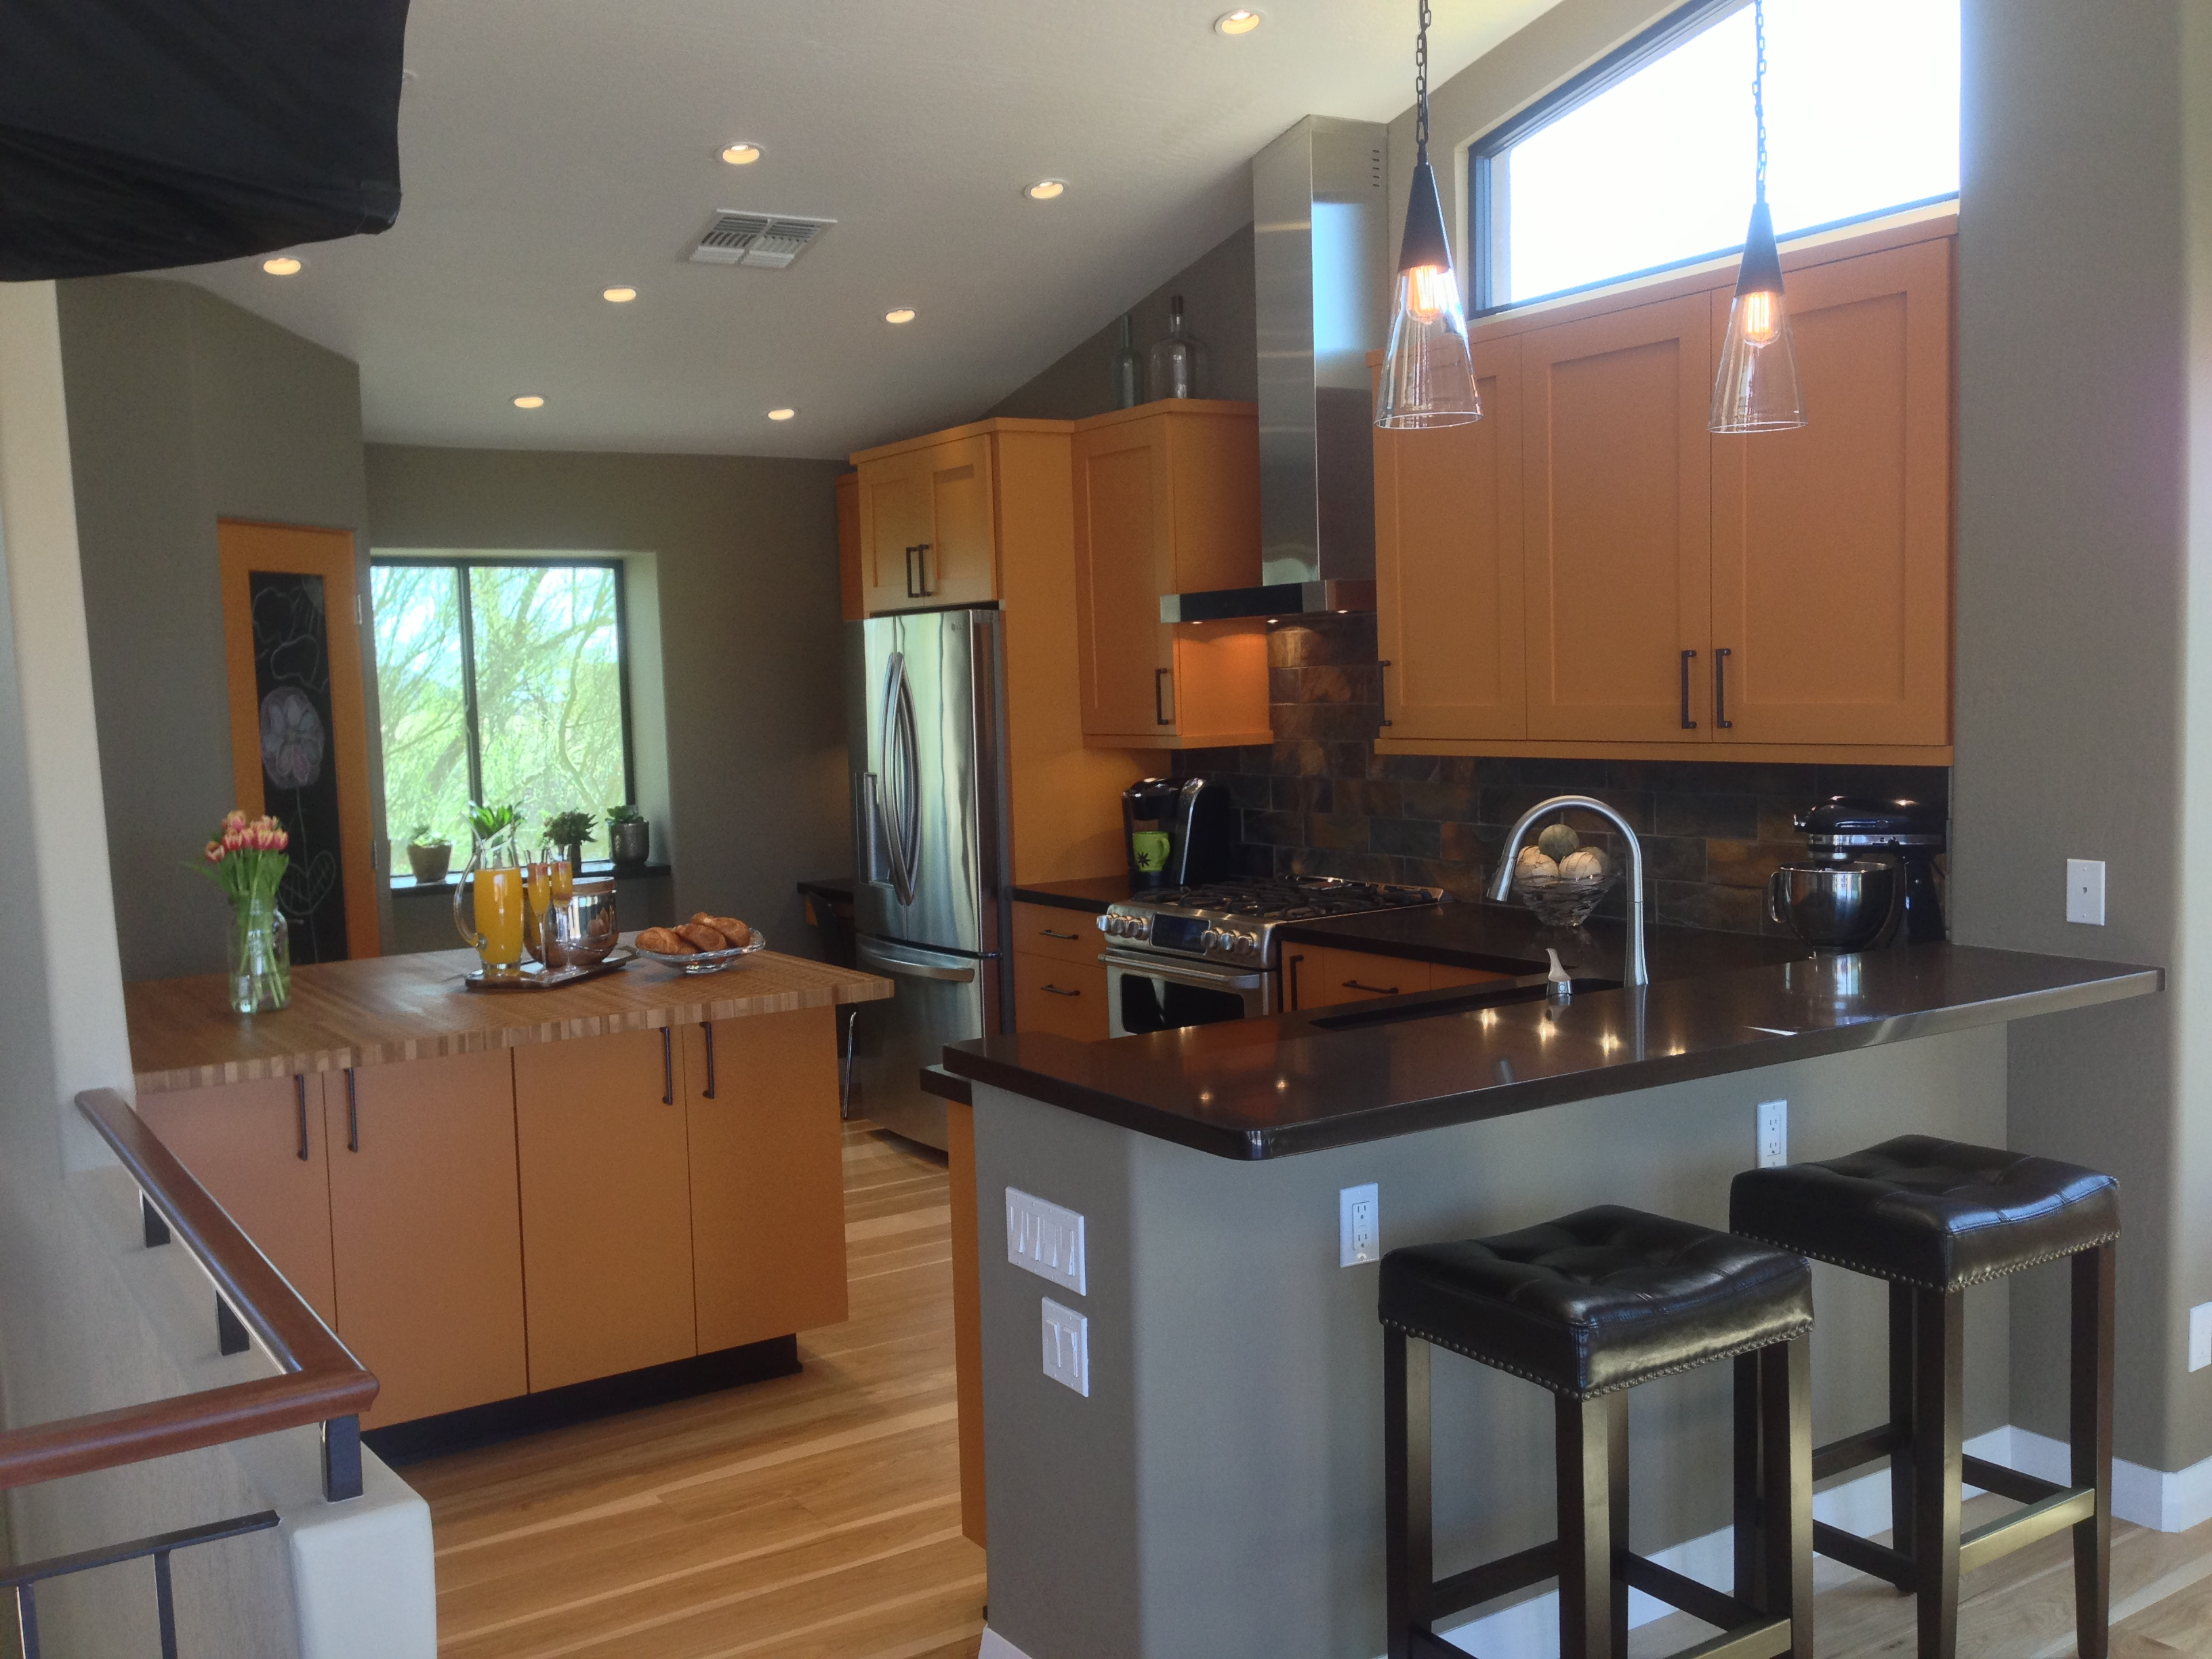 Granite Countertops For Kitchen Remodeling In Scottsdale